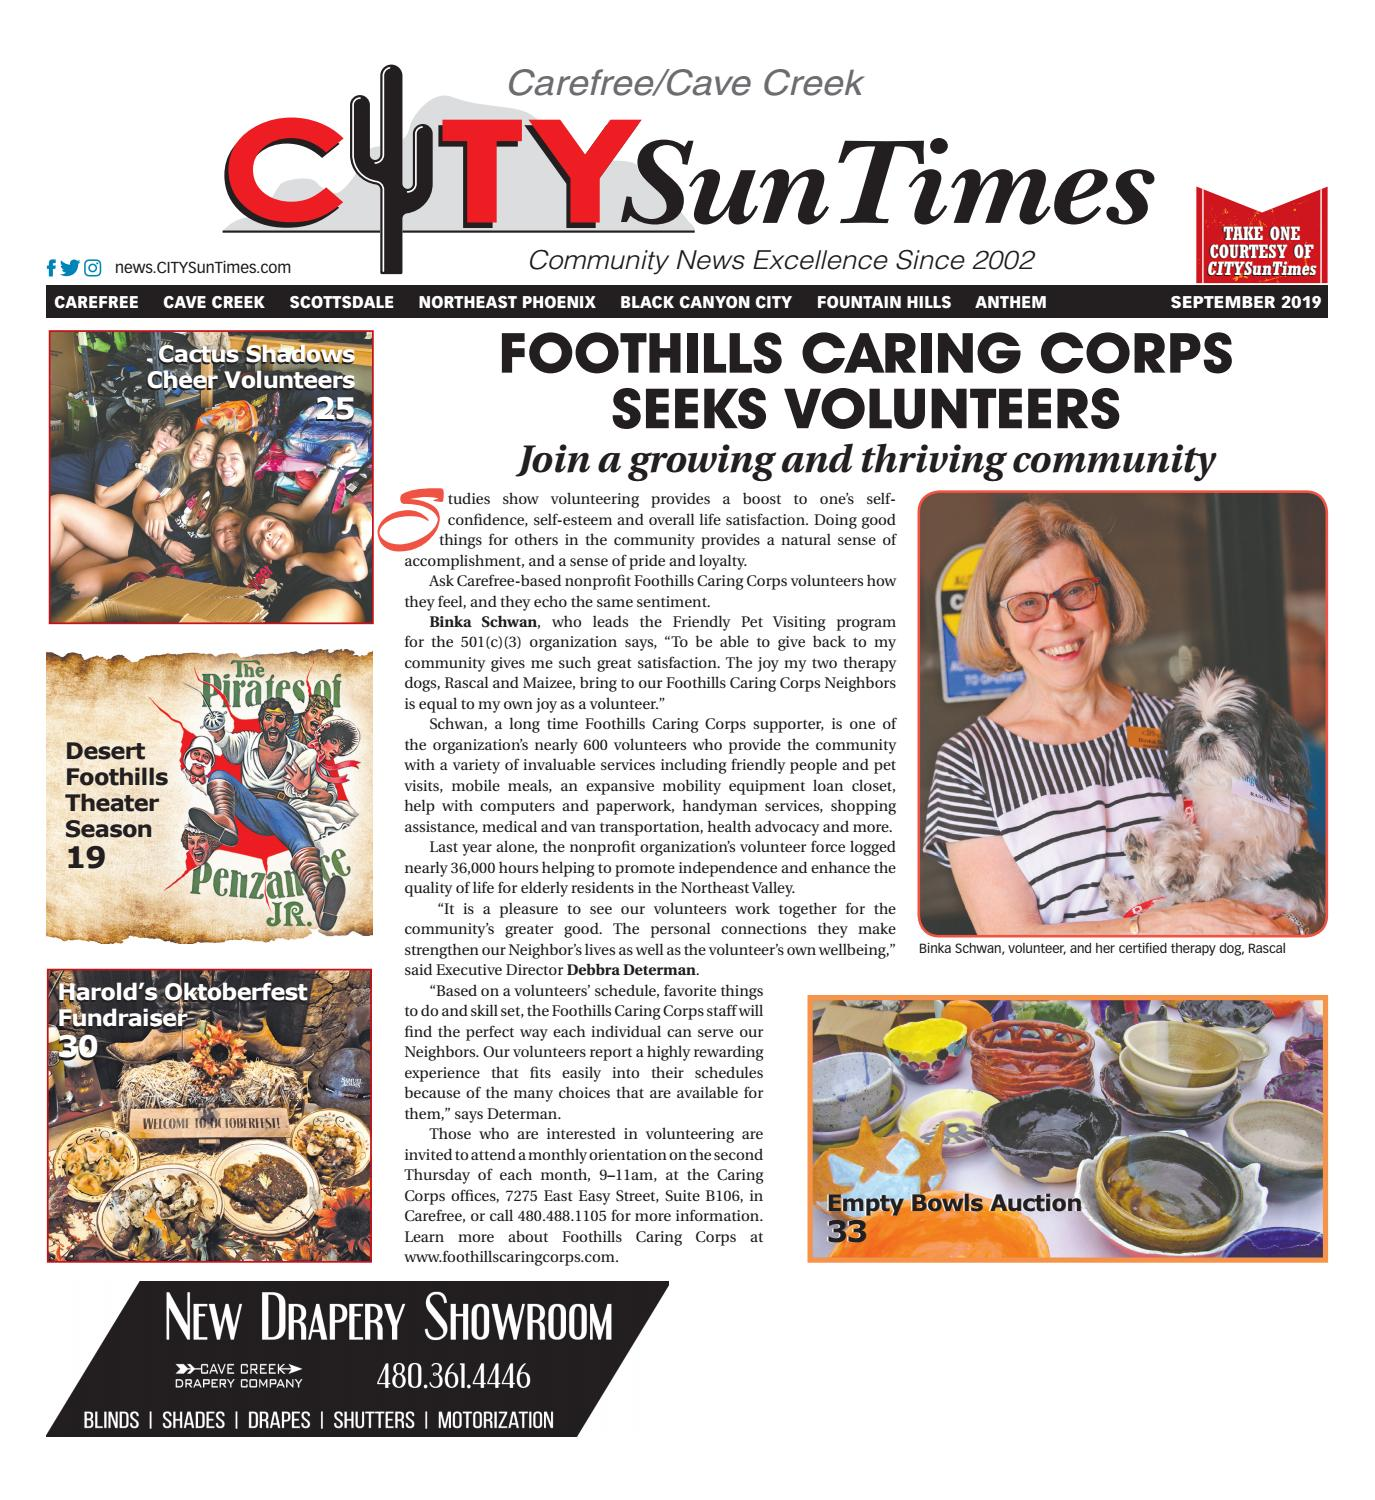 Carefree Cave Creek CITYSunTimes September 2019 Issue by